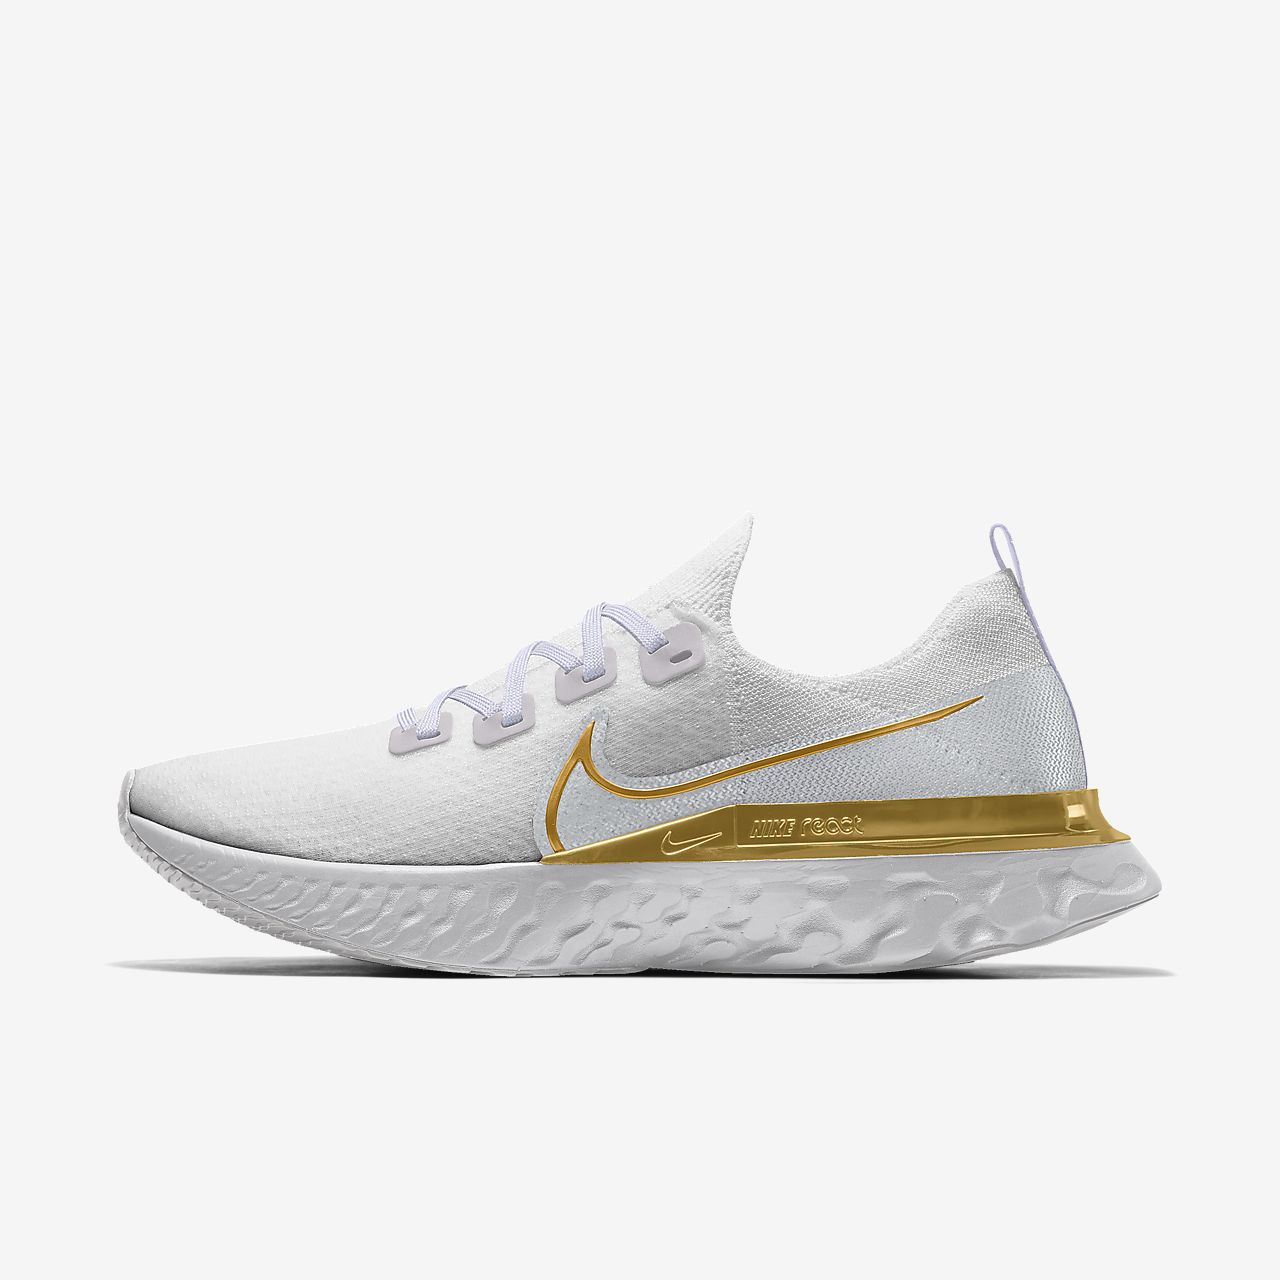 Chaussure de running personnalisable Nike React Infinity Run Flyknit By You pour Homme